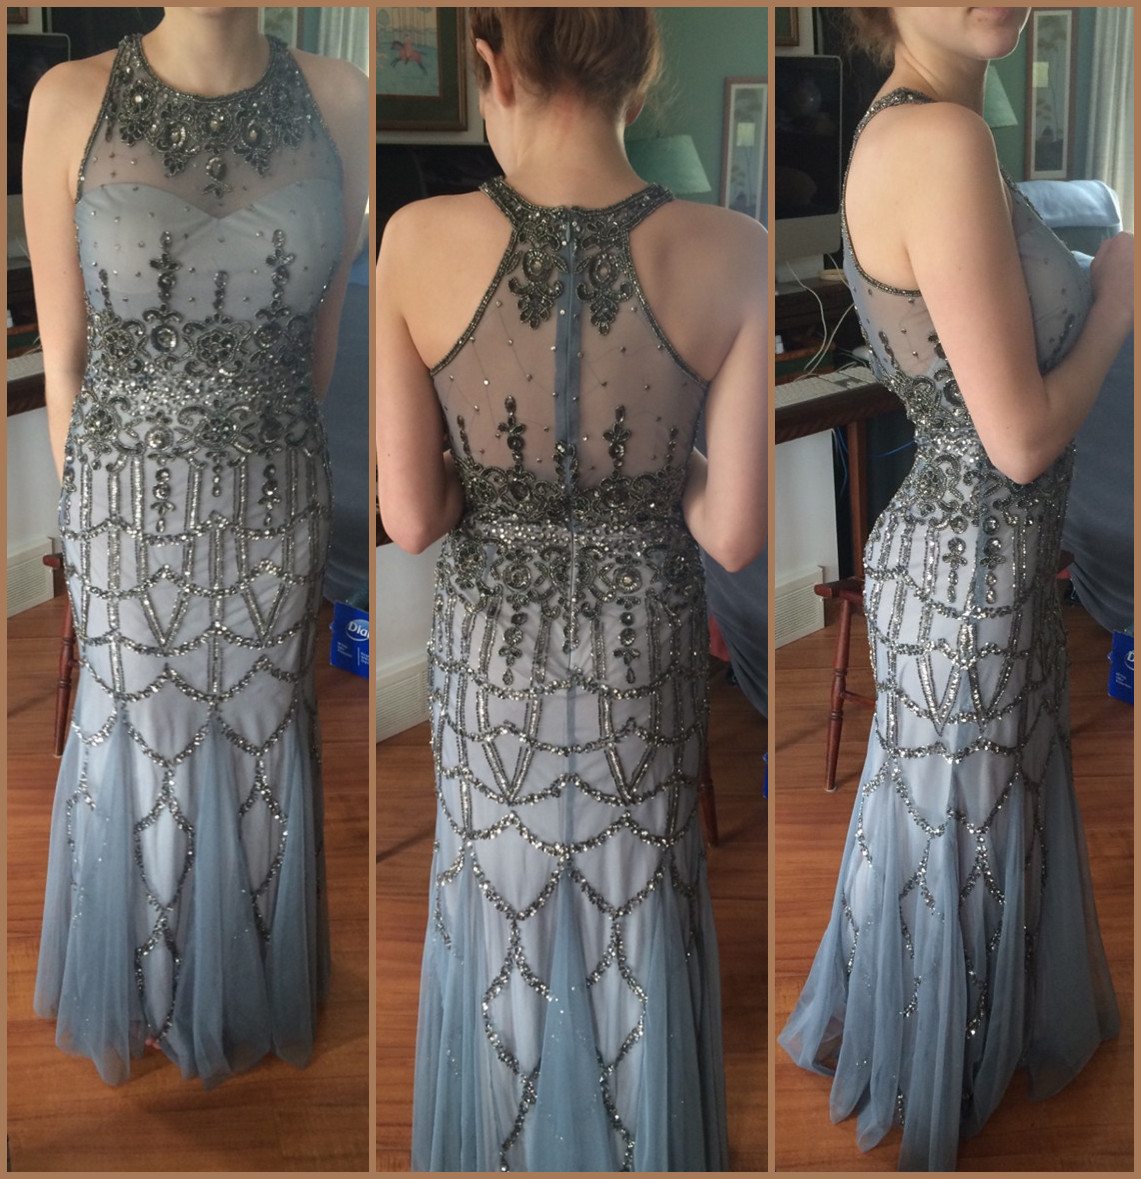 Charming Prom Dress,O-Neck Prom Dress,Mermaid Prom Dress,Sequined Prom Dress,Tulle Prom Dress,PD1700480